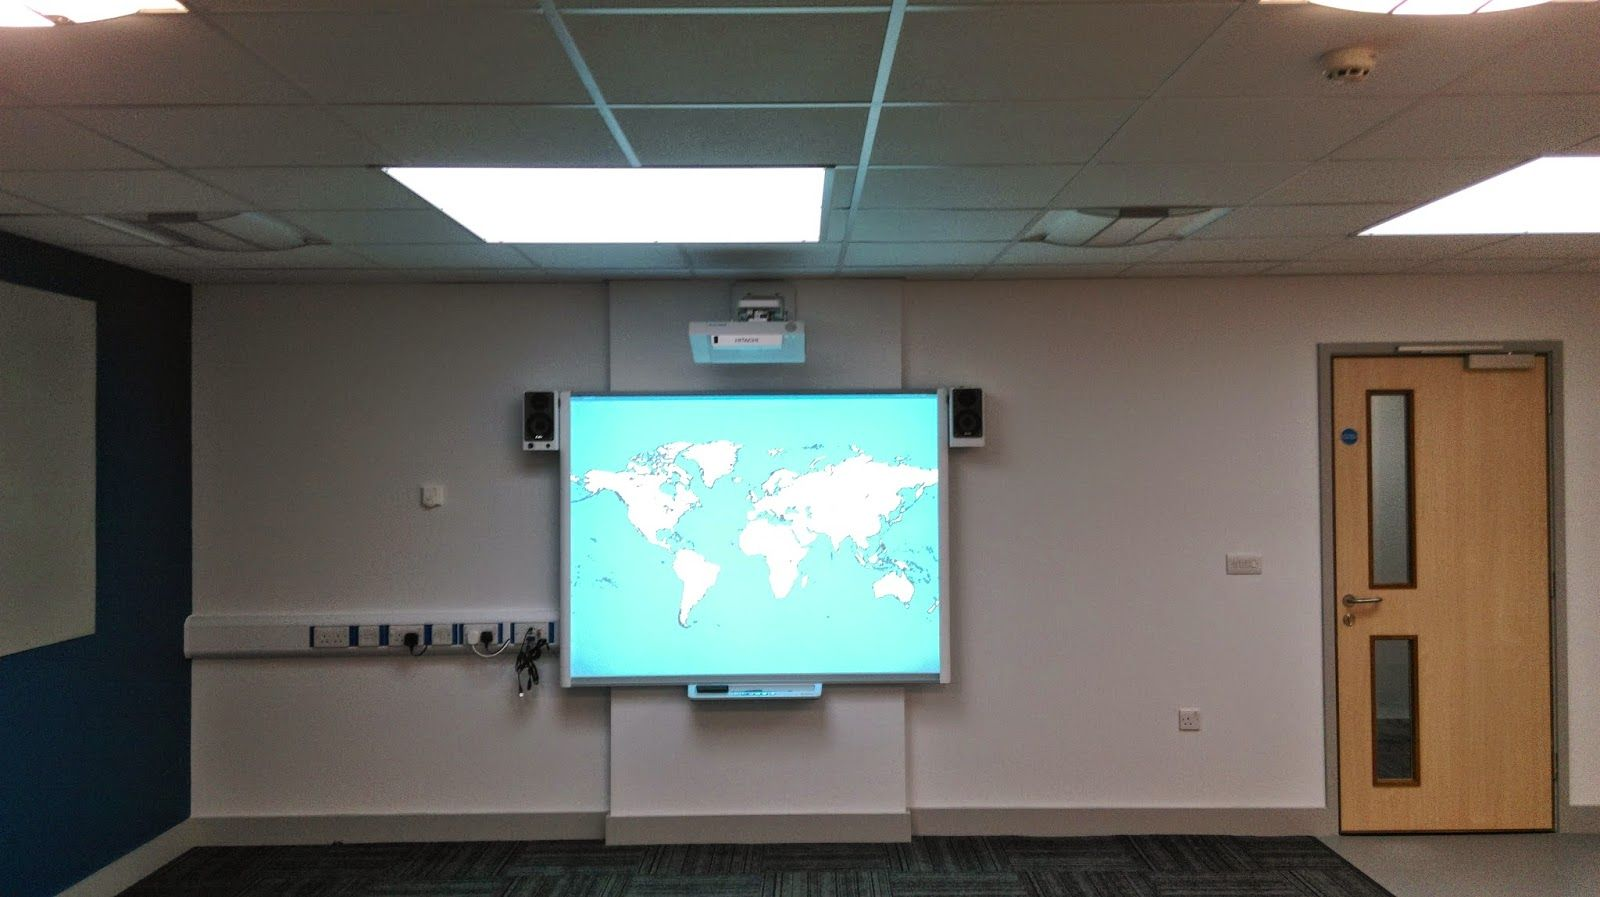 A Hitachi Ultrashort Throw Projector Mounted To The Wall Above An Interactive Smart Board Projector Setup Projector Mount Projector